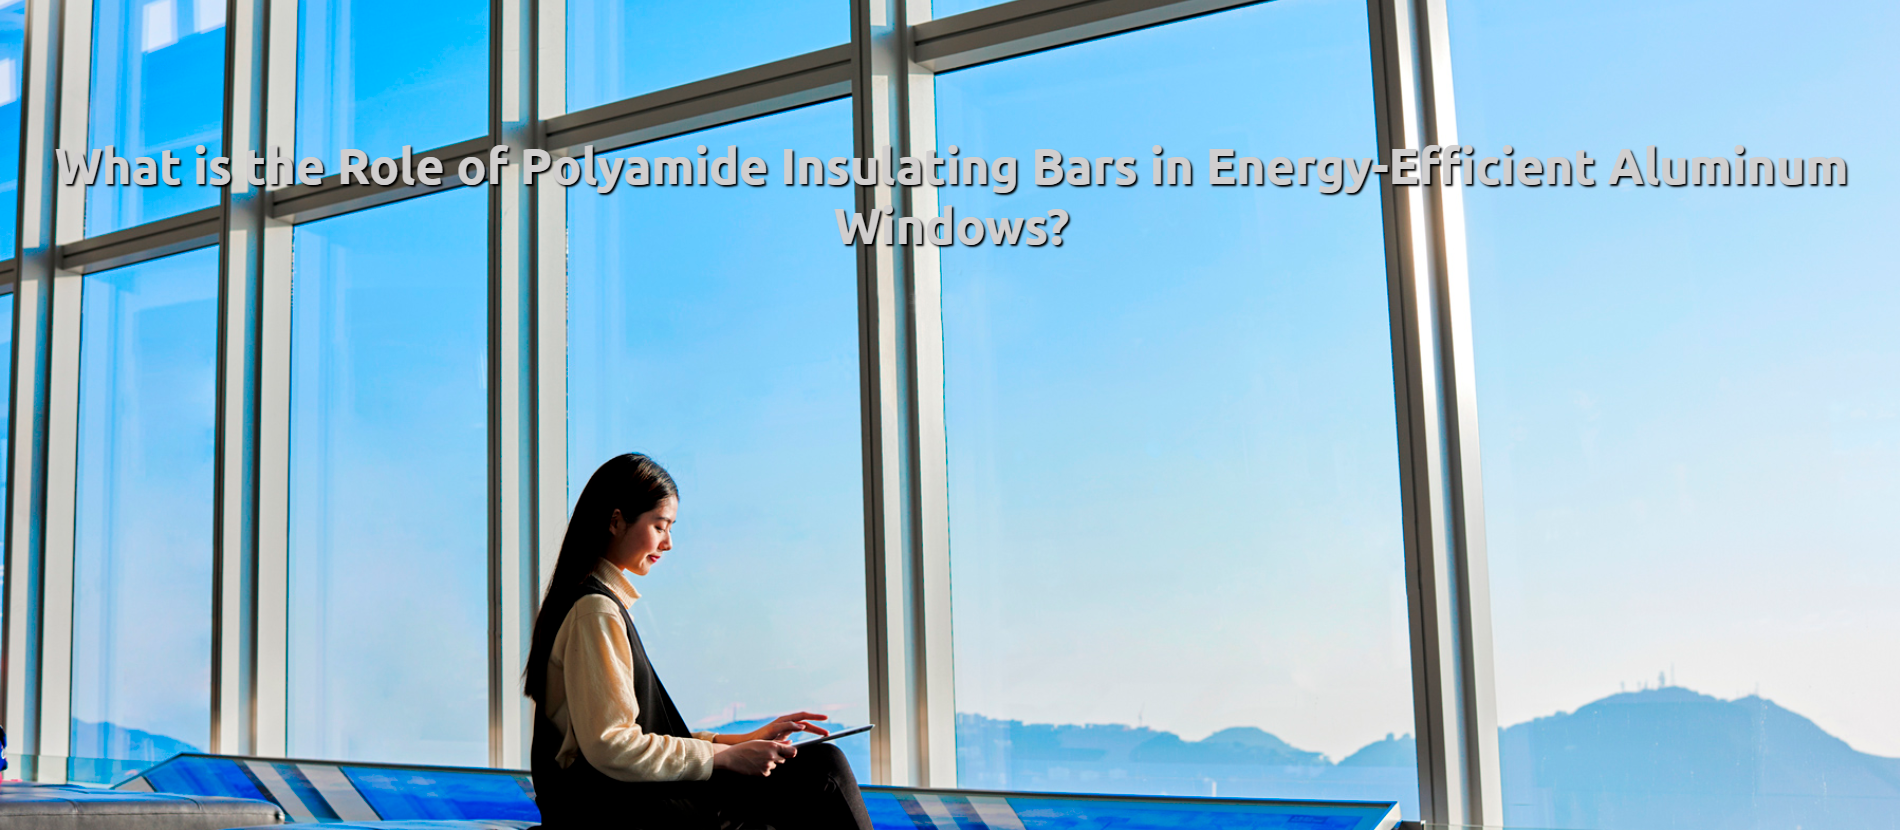 What is the Role of Polyamide Insulating Bars in Energy